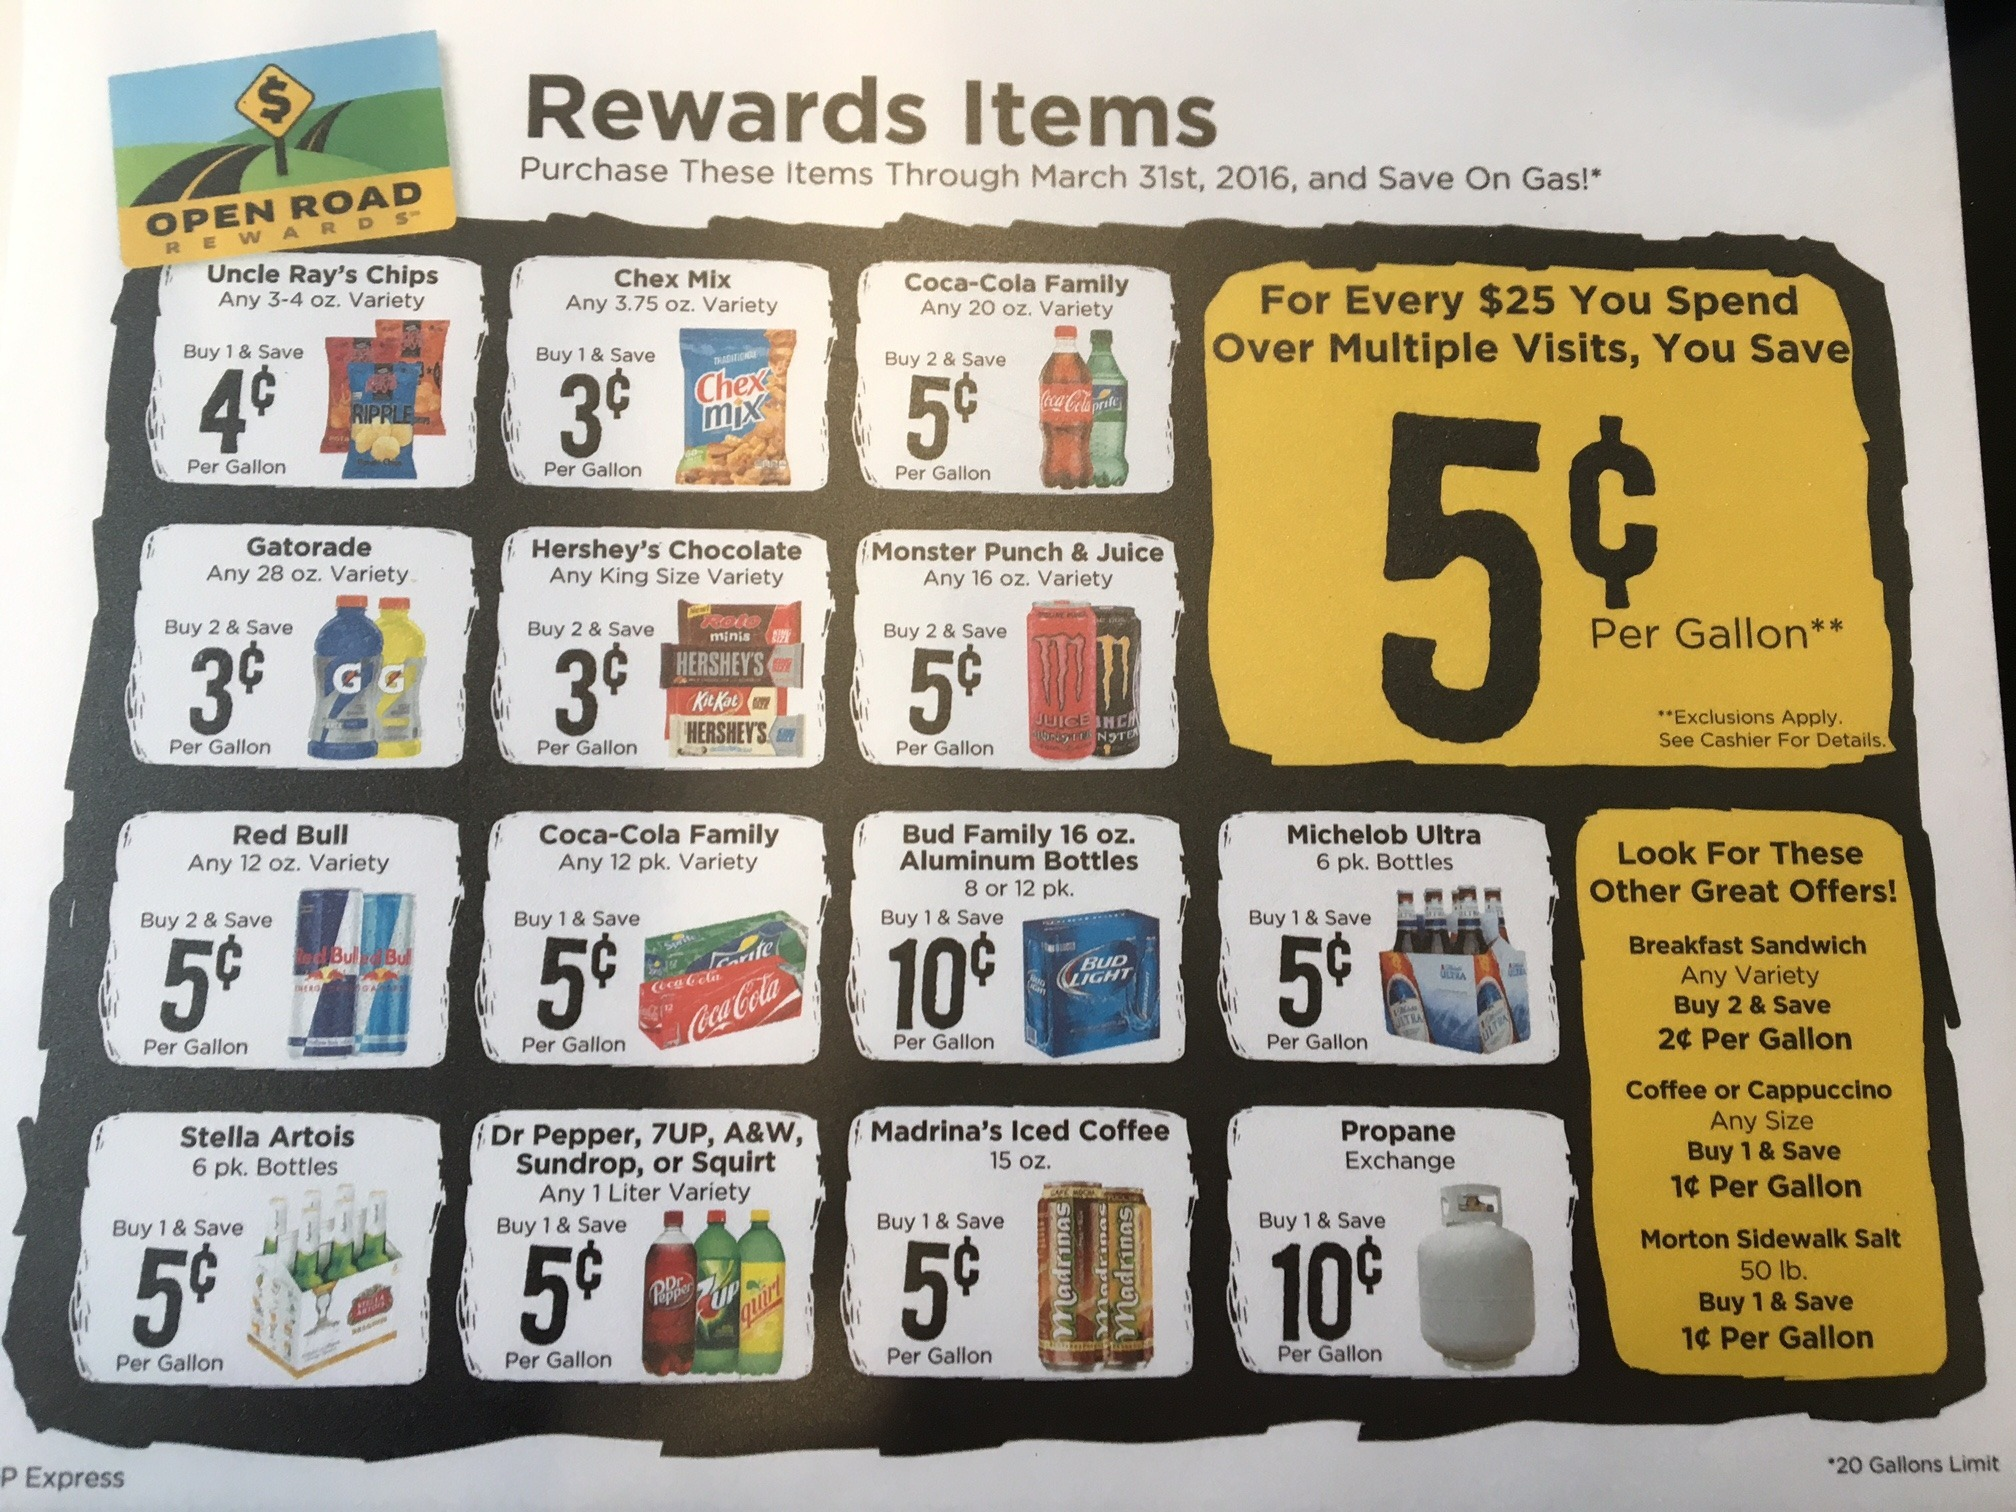 No Ethanol Gas Near Me >> JP Express Coupons near me in Egg Harbor | 8coupons